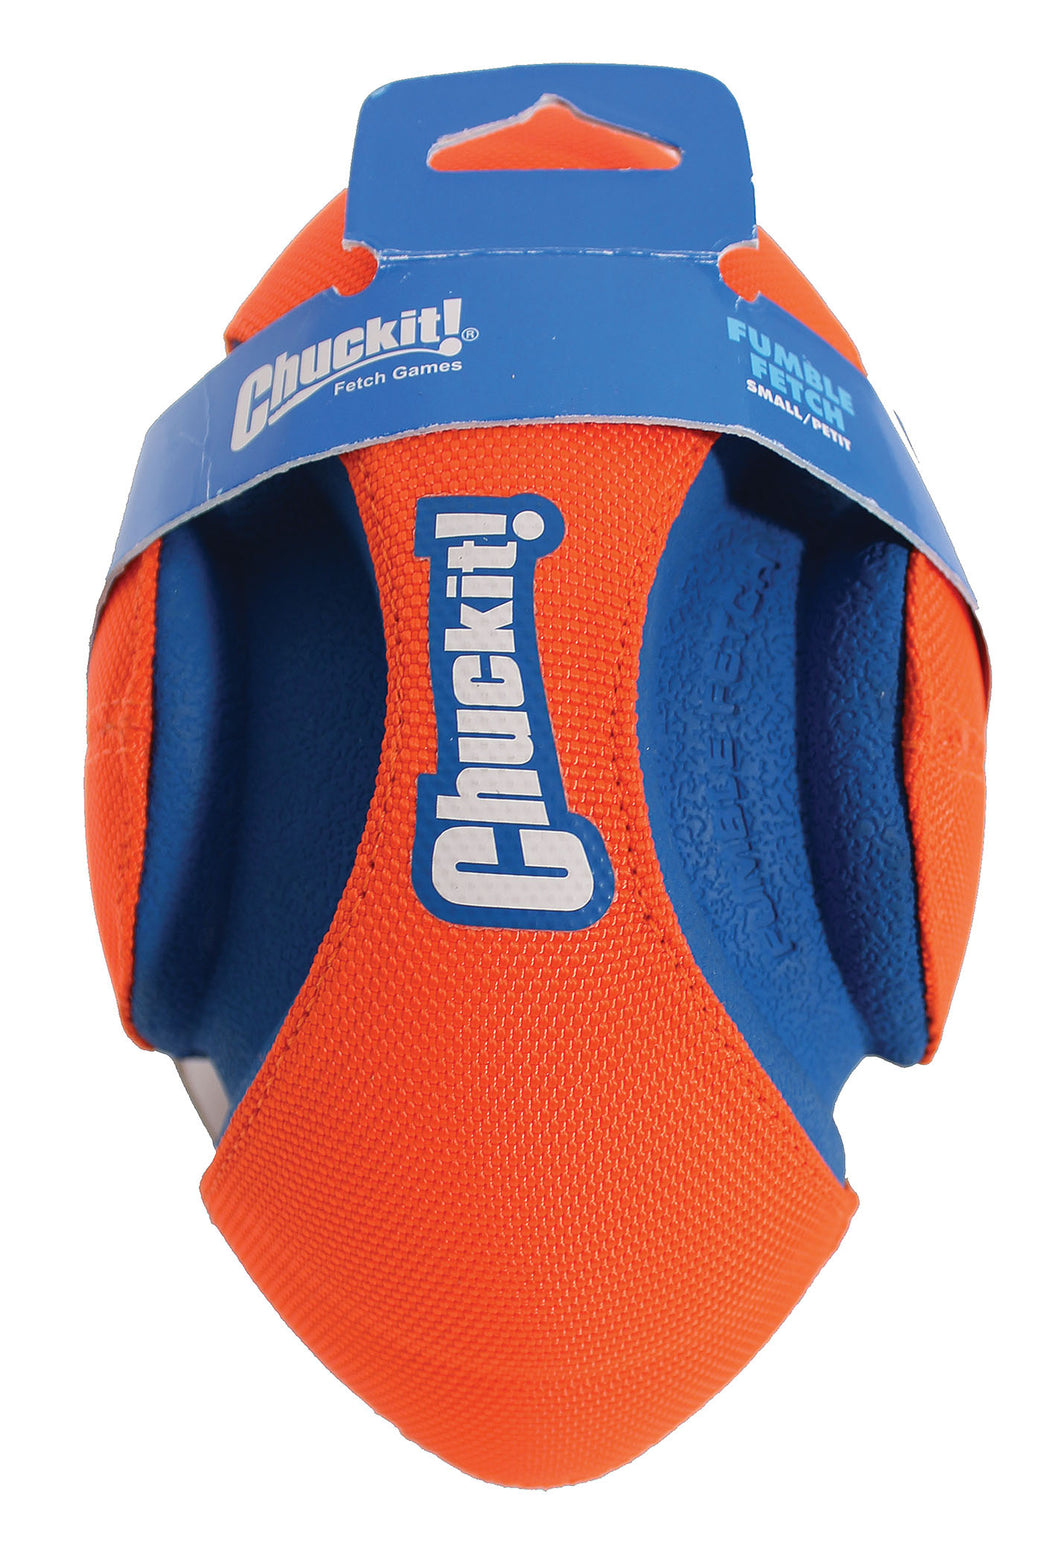 Chuckit! Fumble Fetch Dog Toy